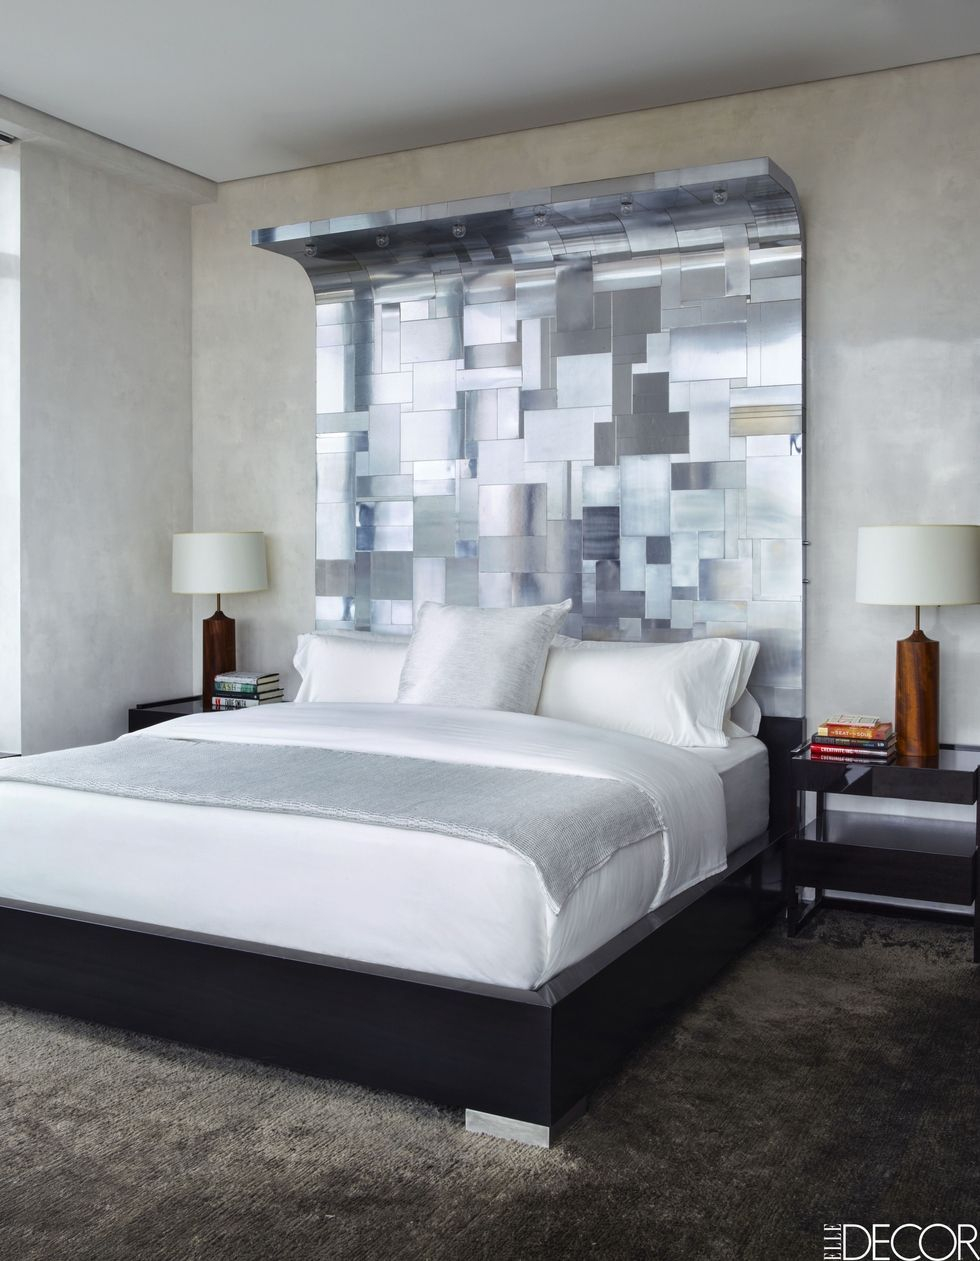 30 Inspiring Modern Bedroom Ideas Best Modern Bedroom Designs within 12 Smart Concepts of How to Upgrade Modern Bedroom Decorating Ideas